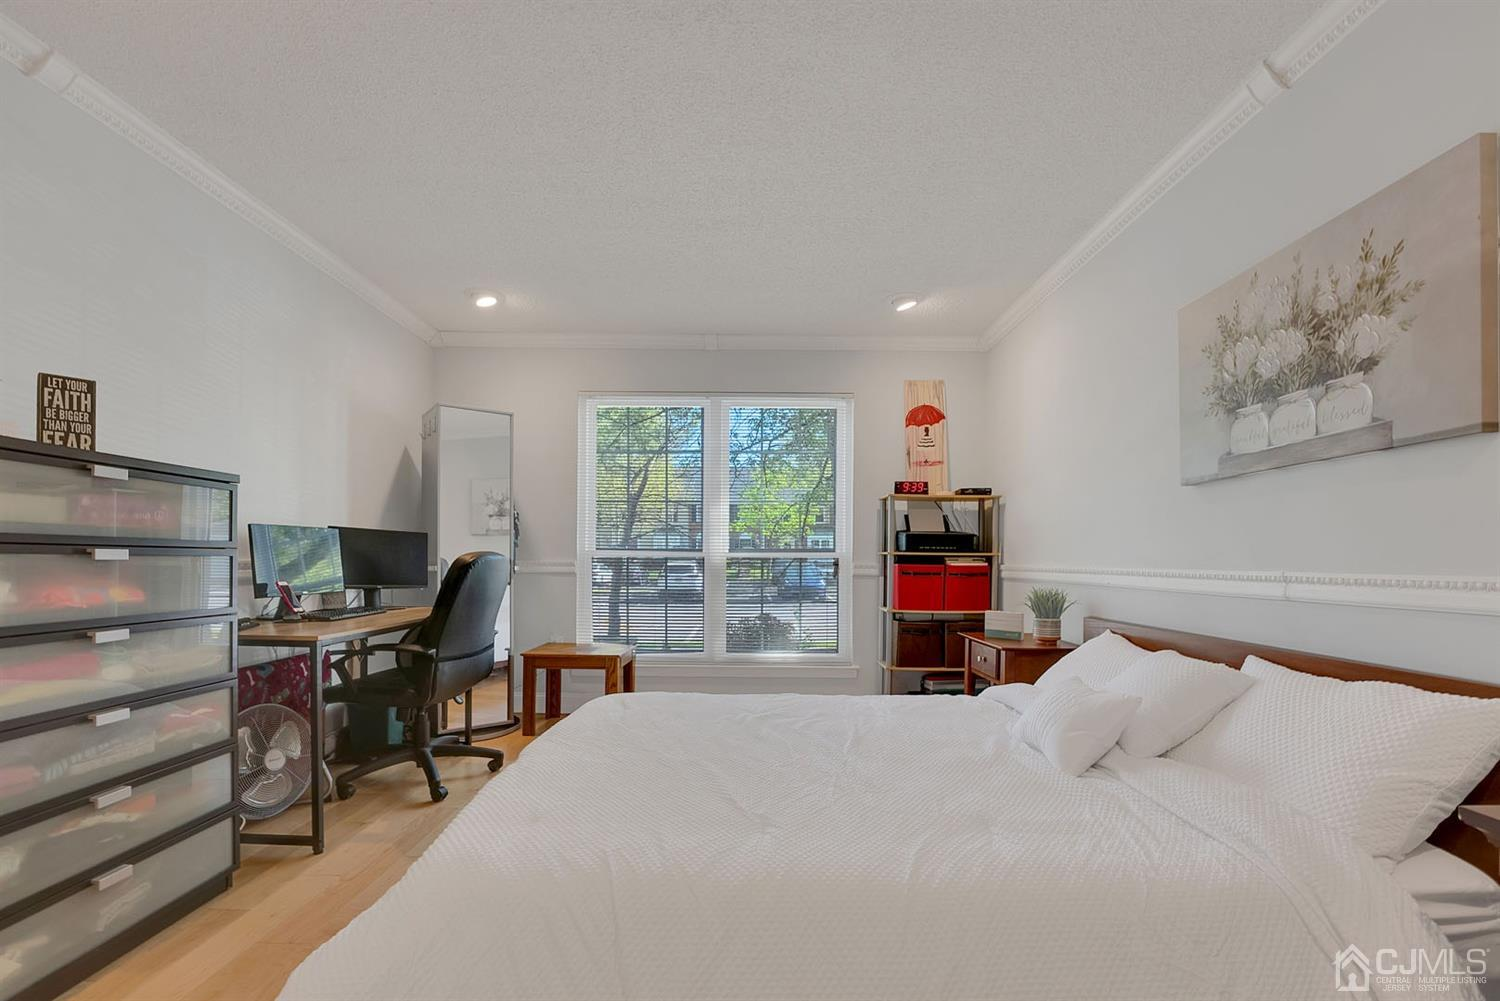 Spacious Master bedroom with recessed lights, lots of closet space plus a separate linen closet and updated full bath with stall